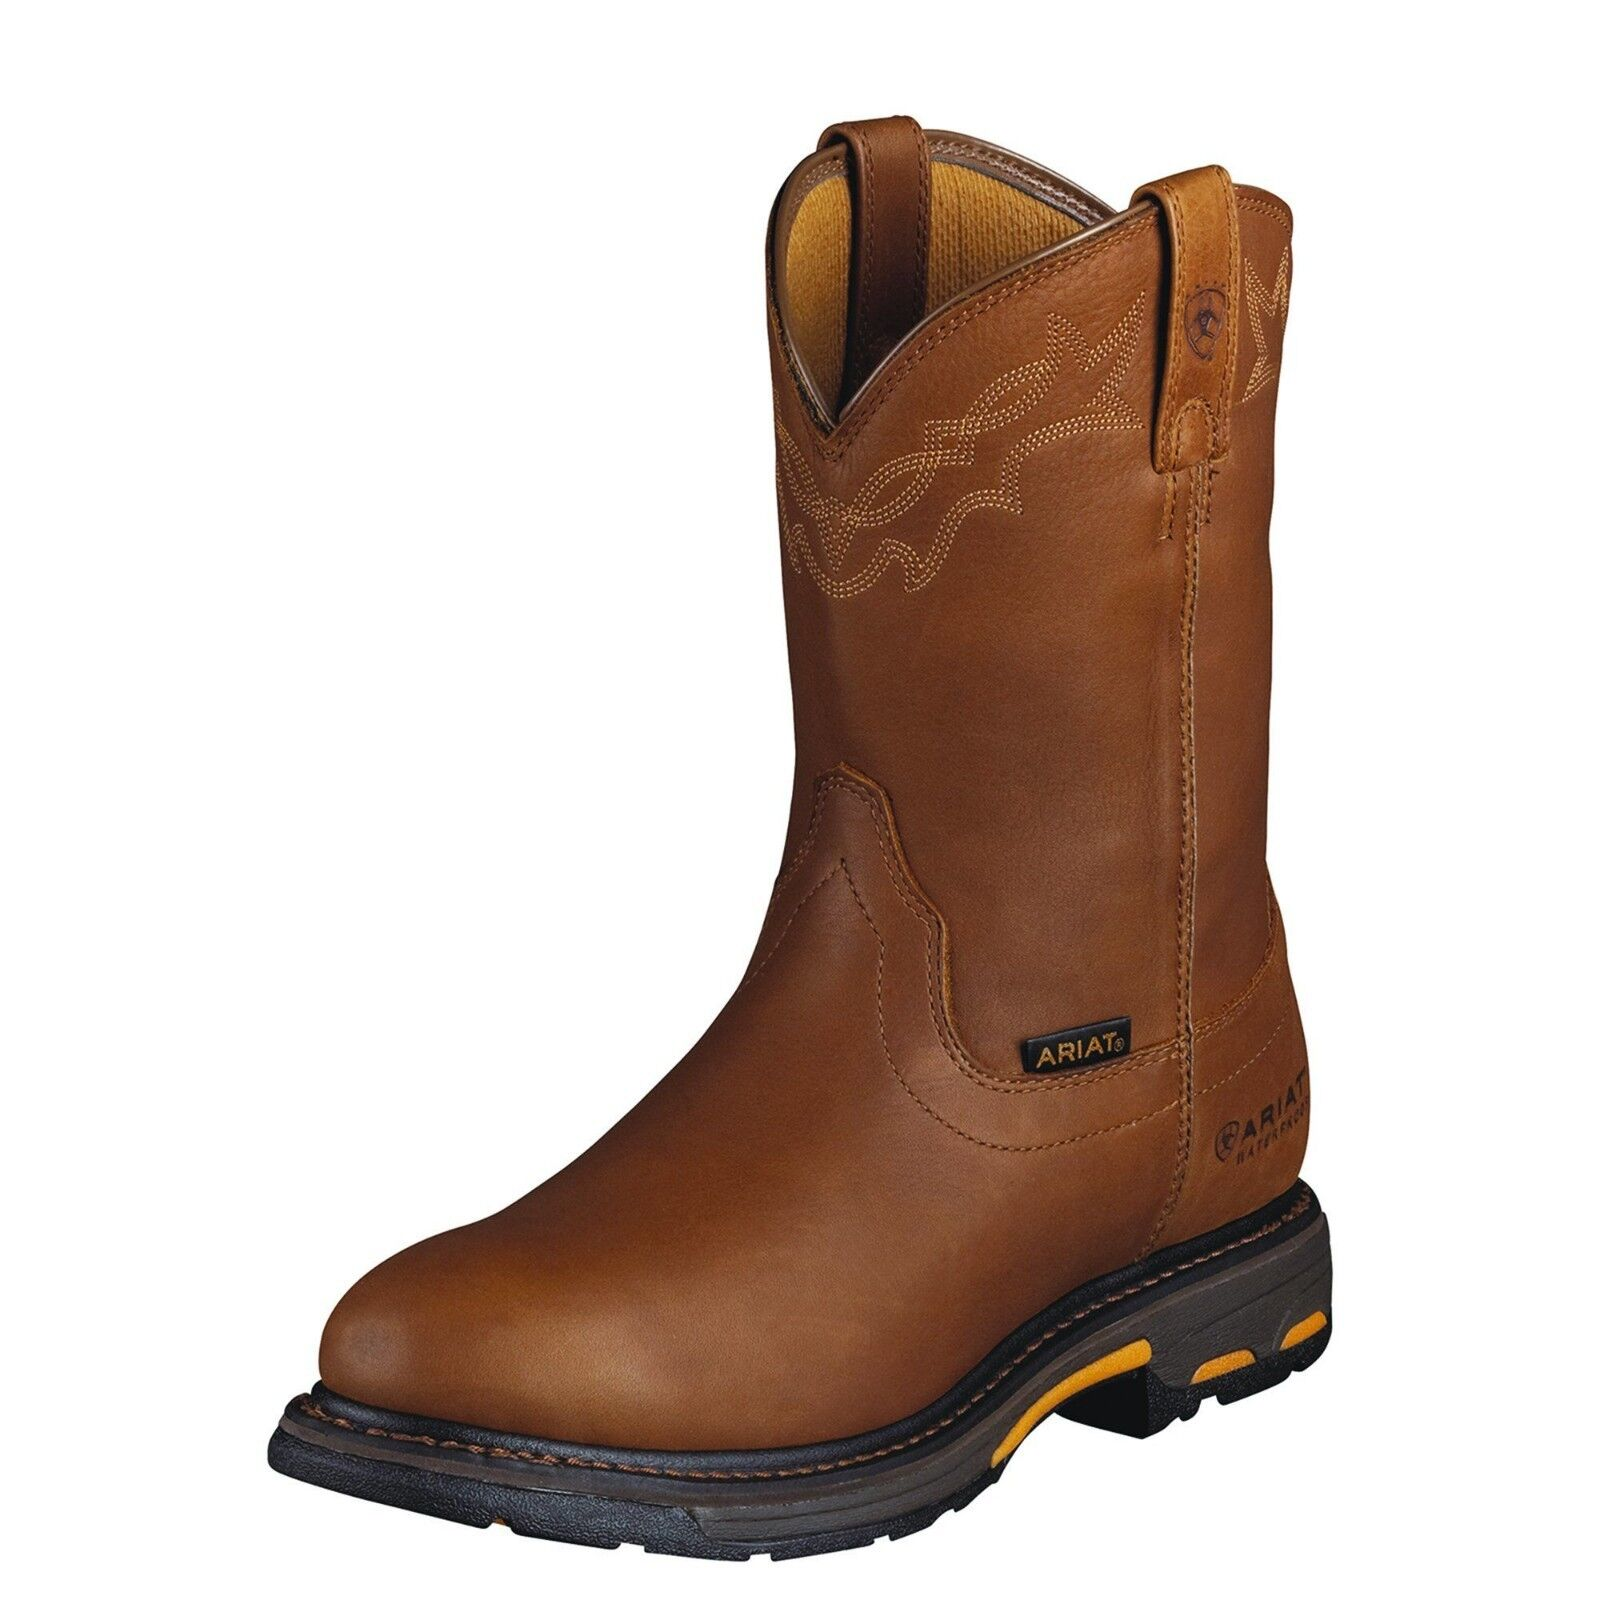 New Men's Ariat 10001197 WorkHog Waterproof  Pull On leather Boot